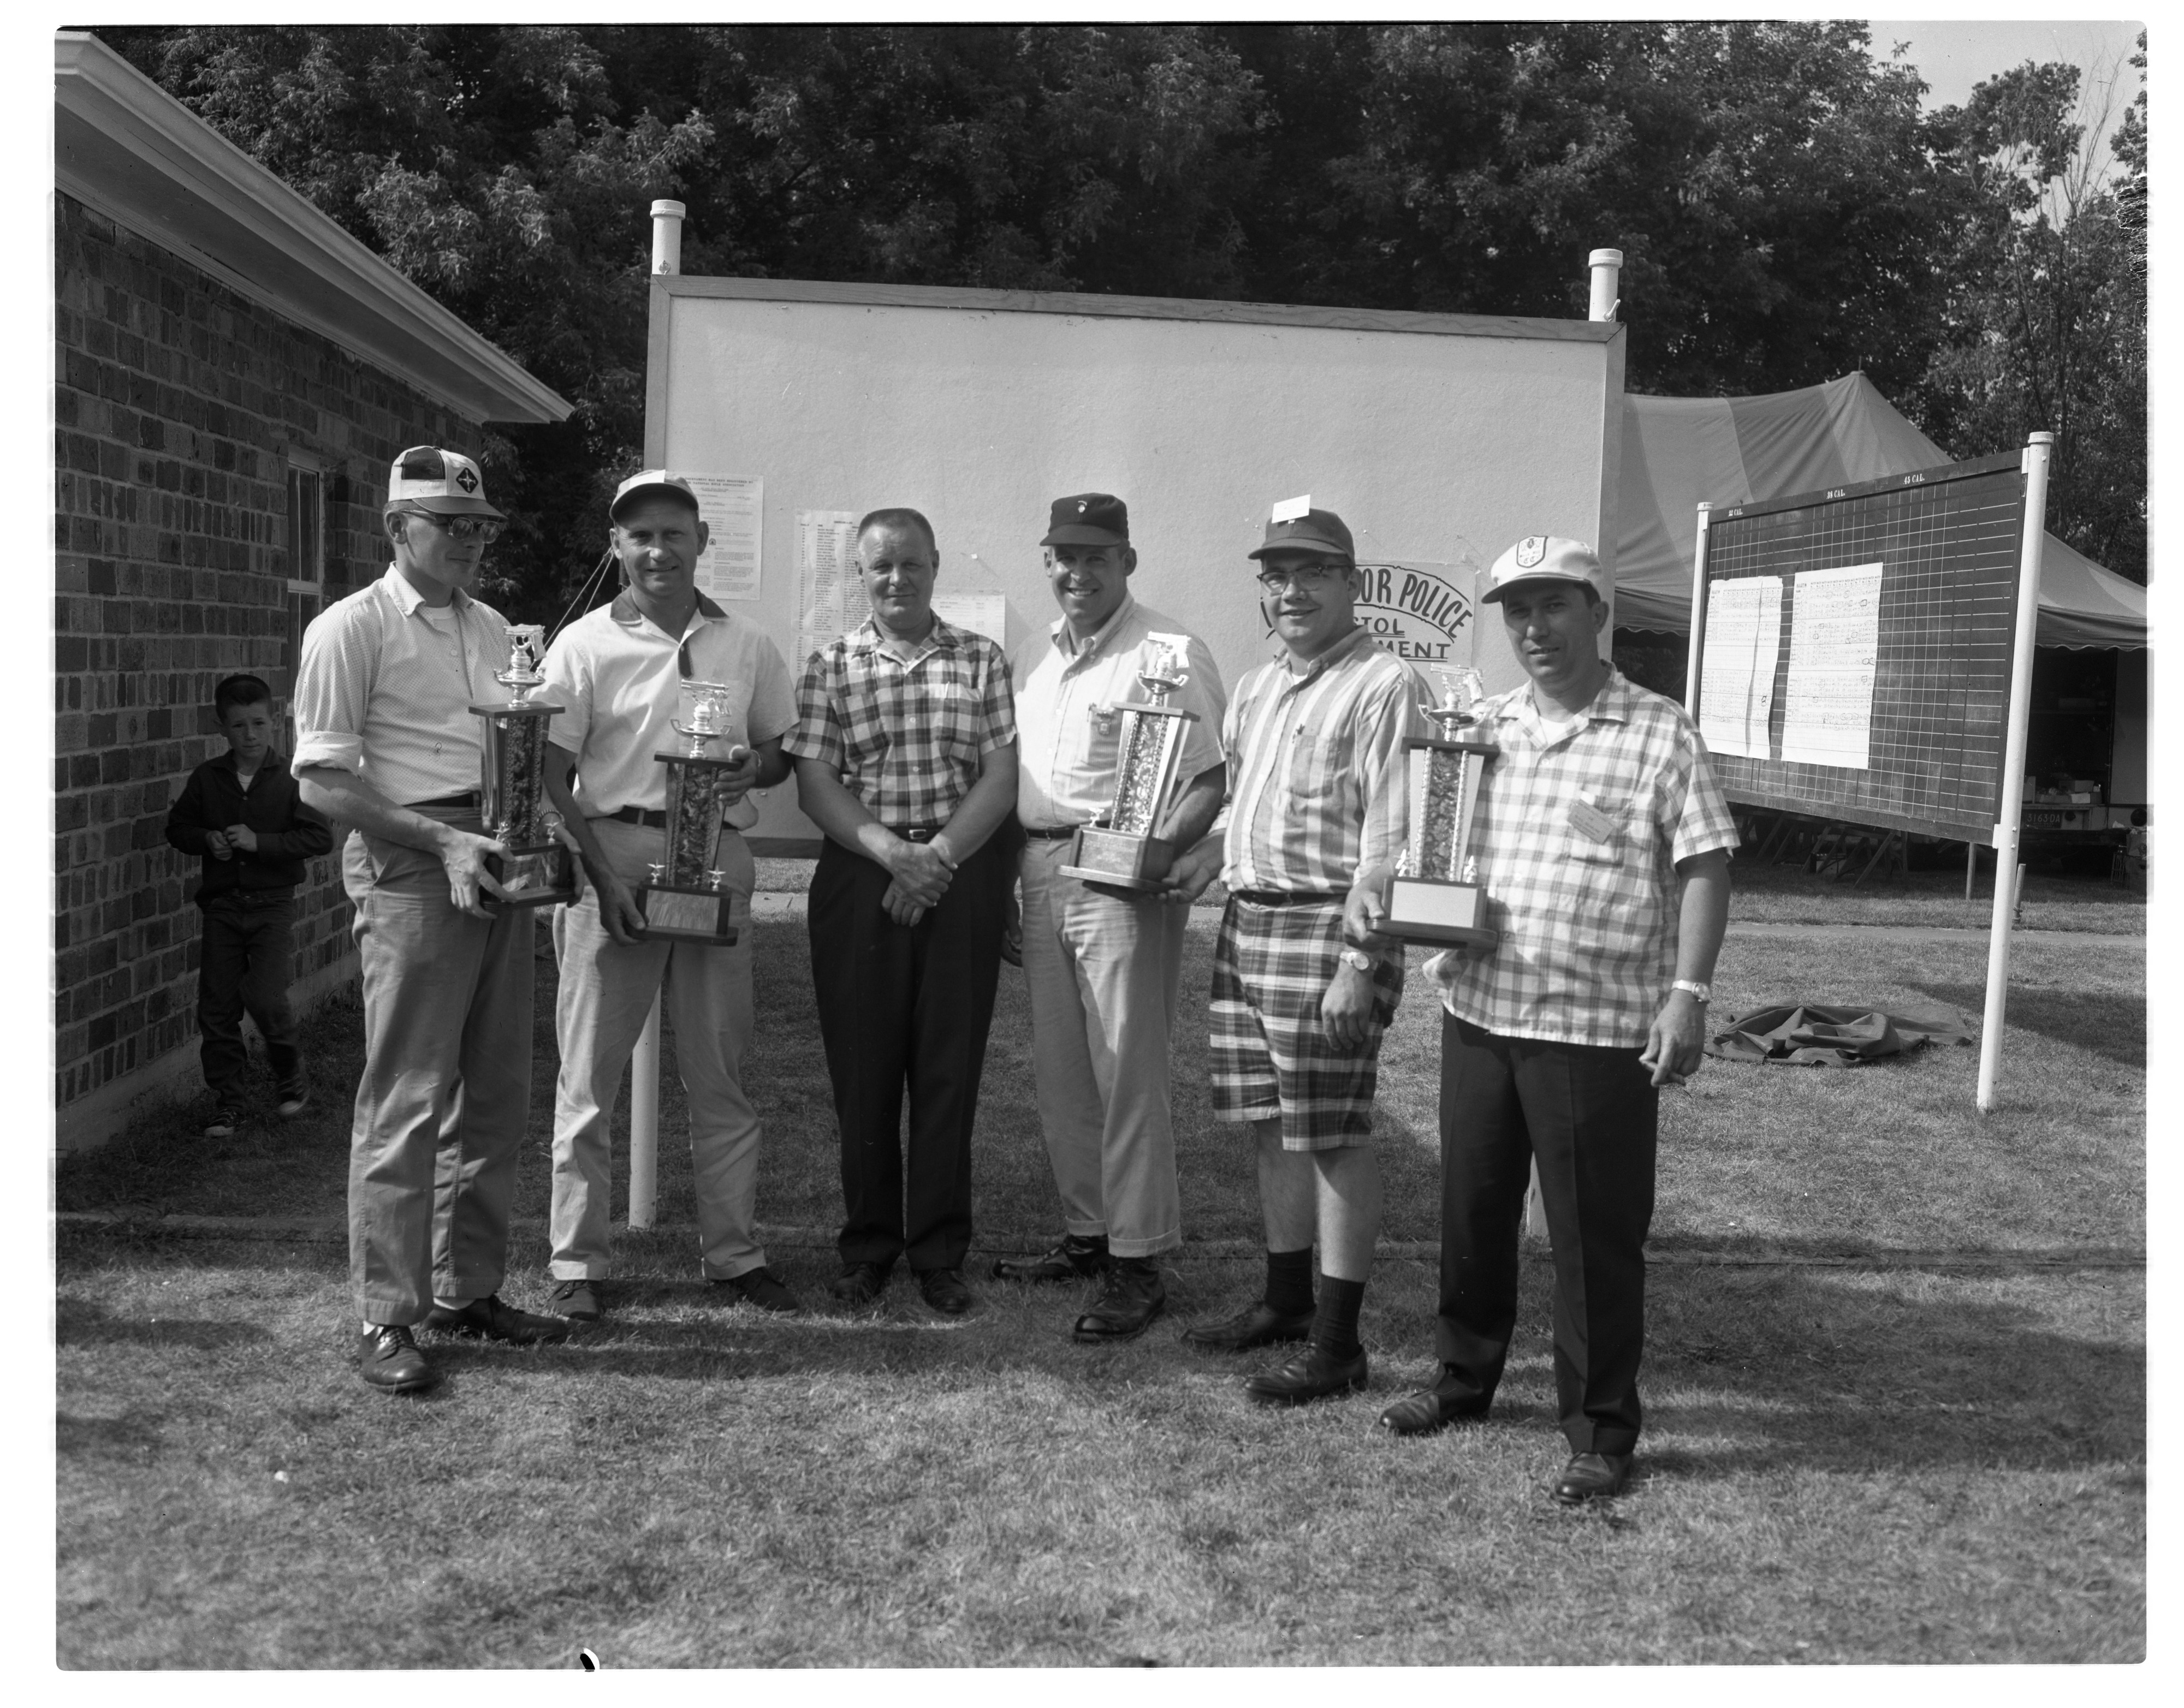 Winners at the Ann Arbor Police Department Shooting Competition, June 1965 image